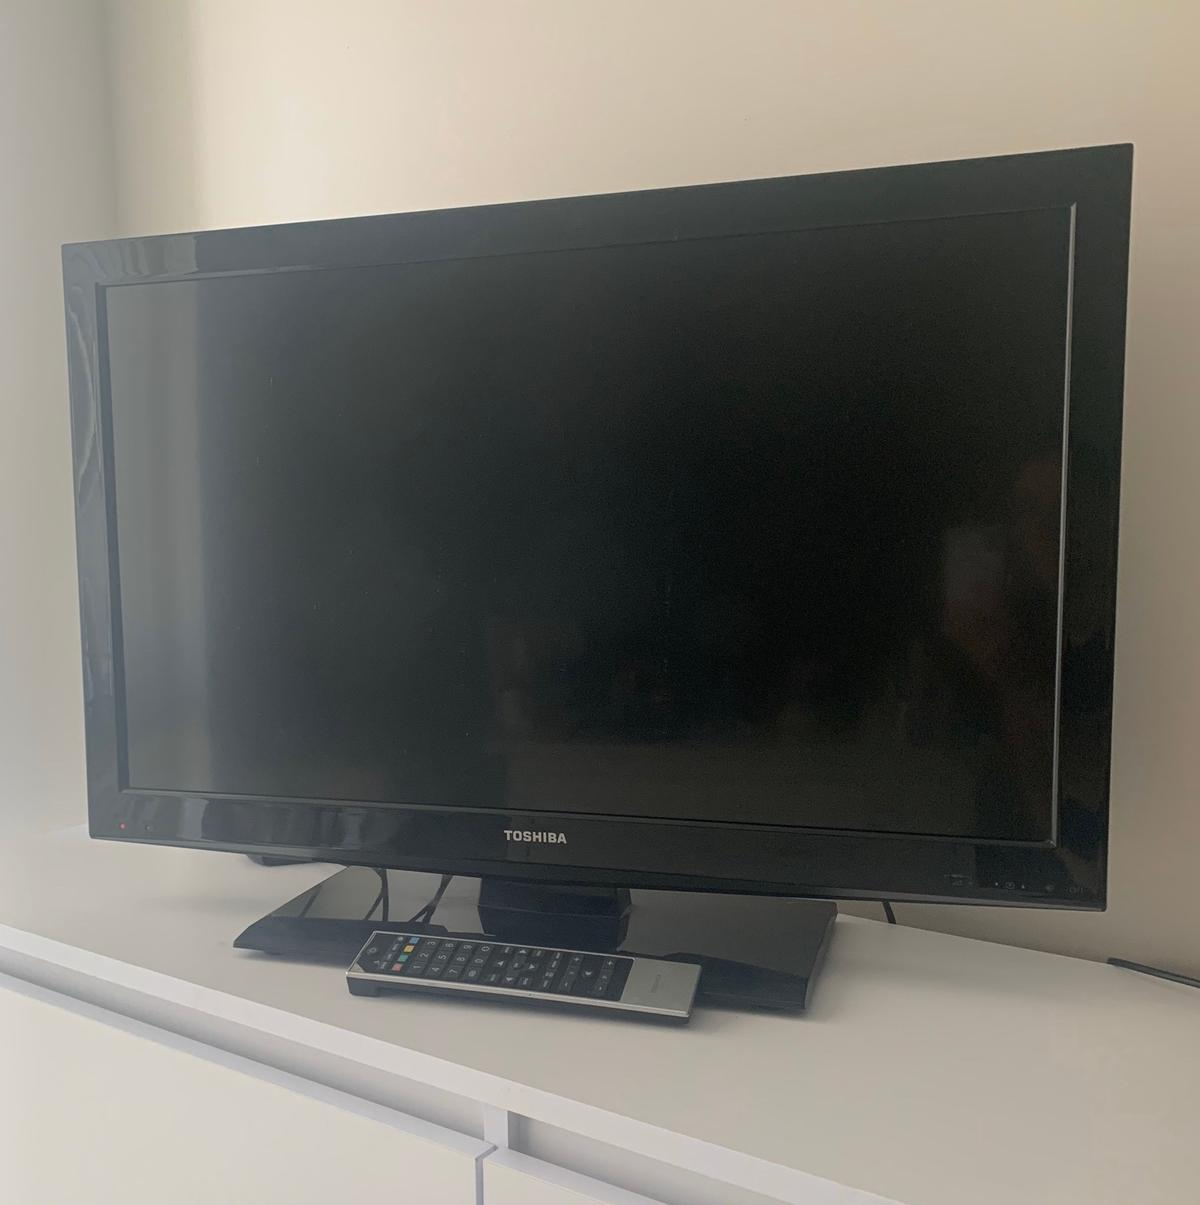 32 inch Toshiba TV fully working with remote control. Free view